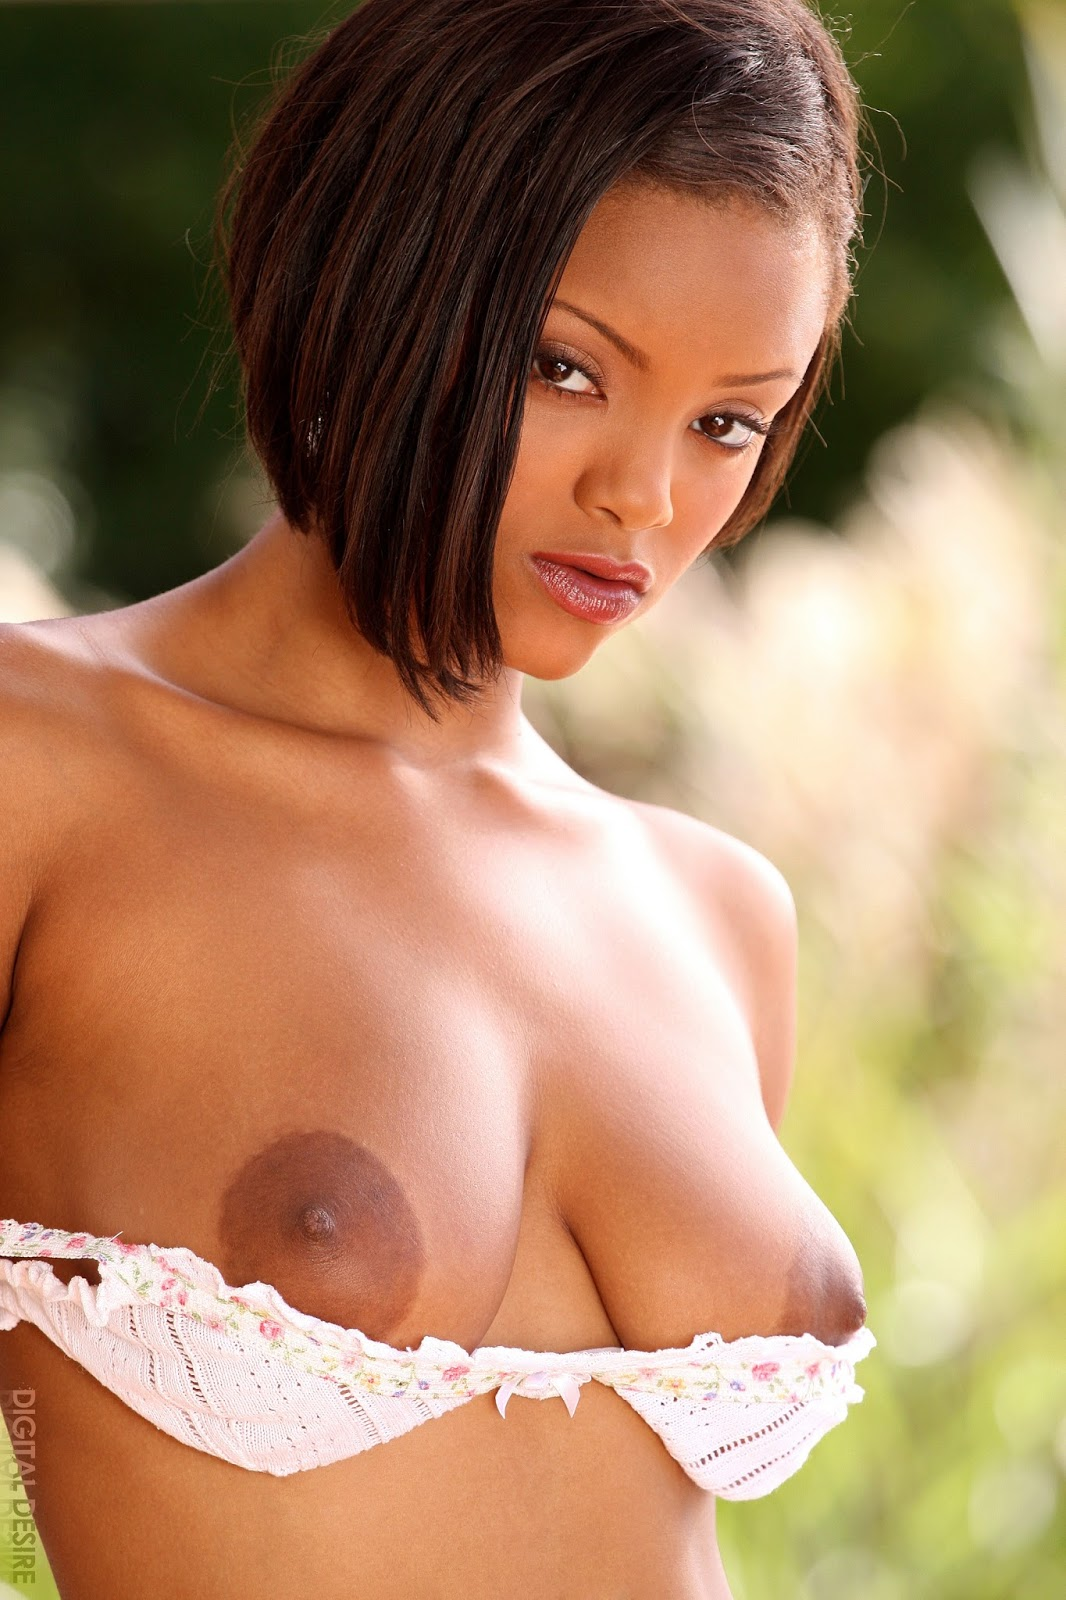 Boobs Julianne Britton nudes (77 foto and video), Sexy, Is a cute, Boobs, cleavage 2020